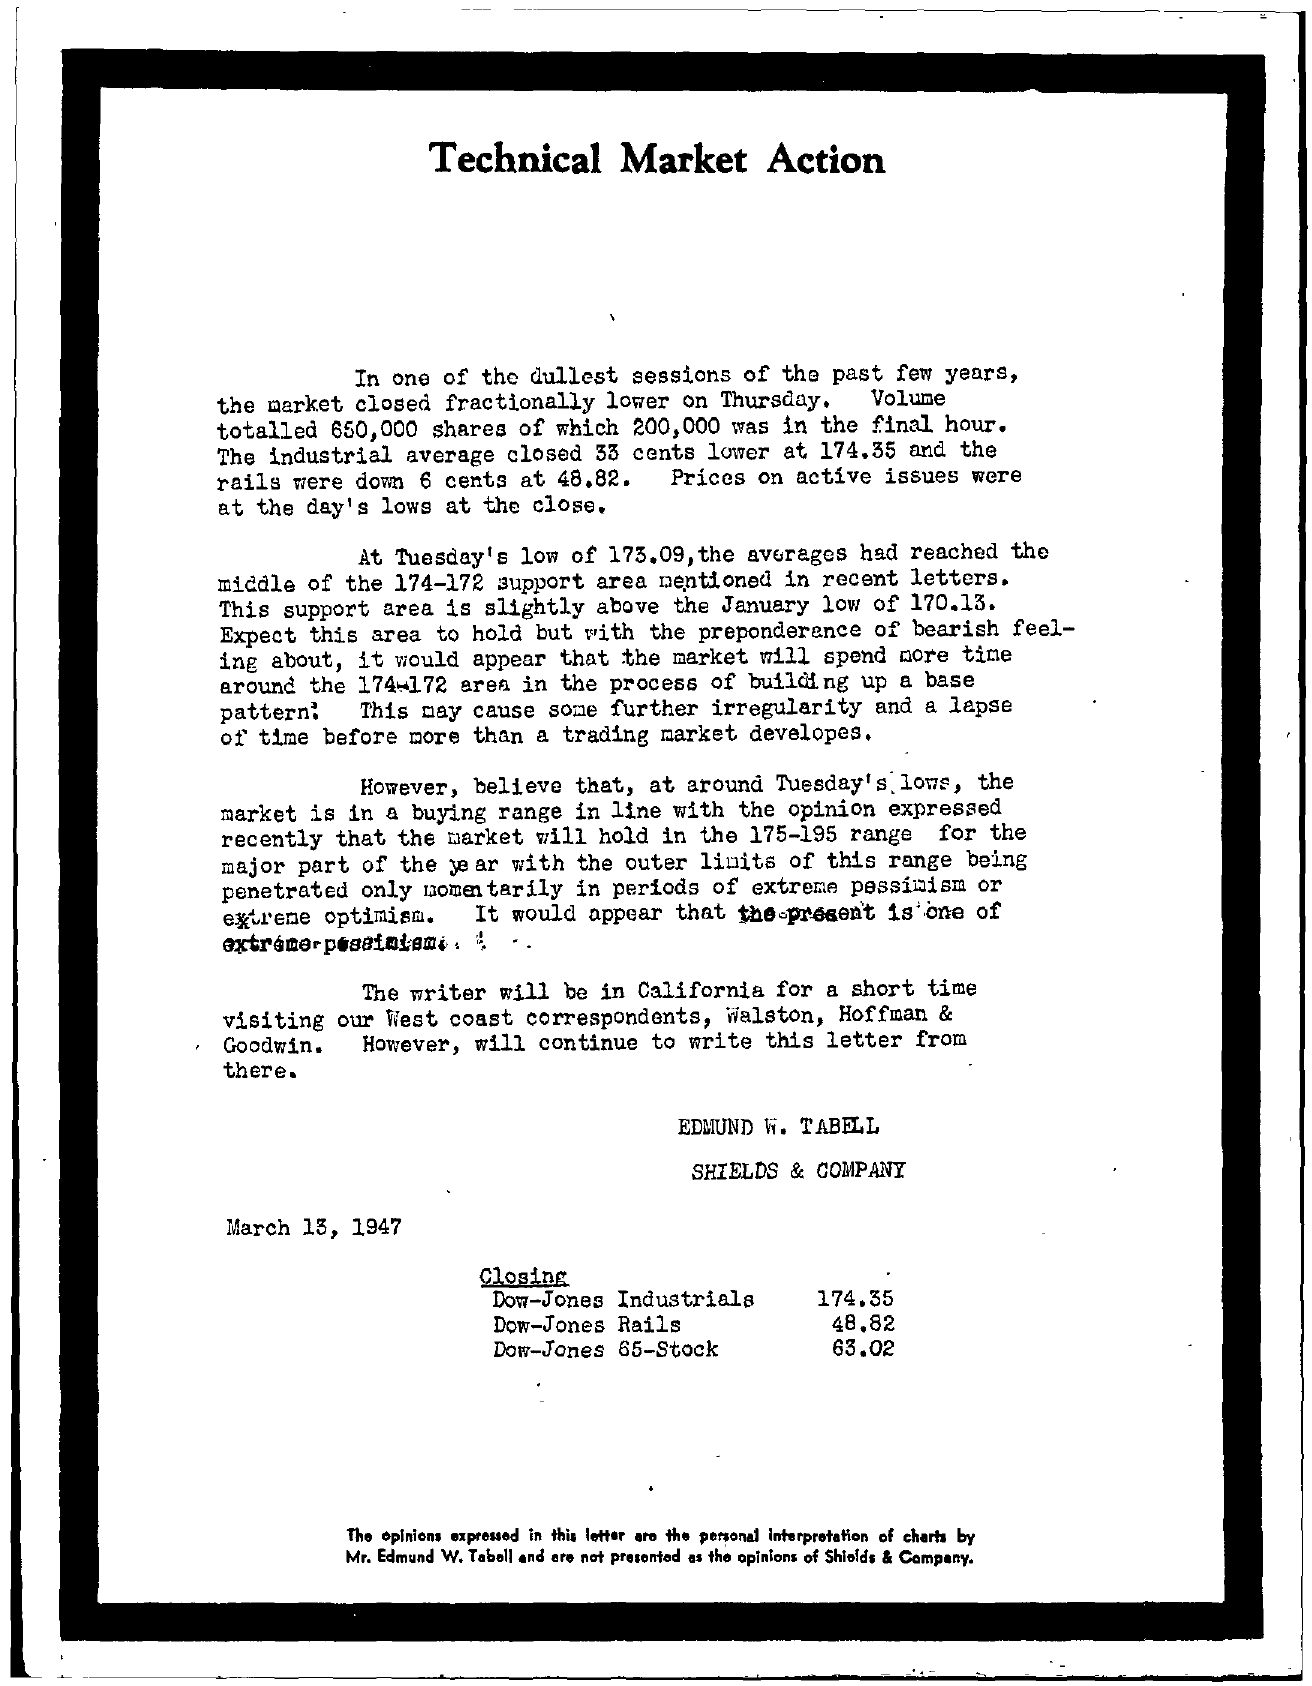 Tabell's Market Letter - March 13, 1947